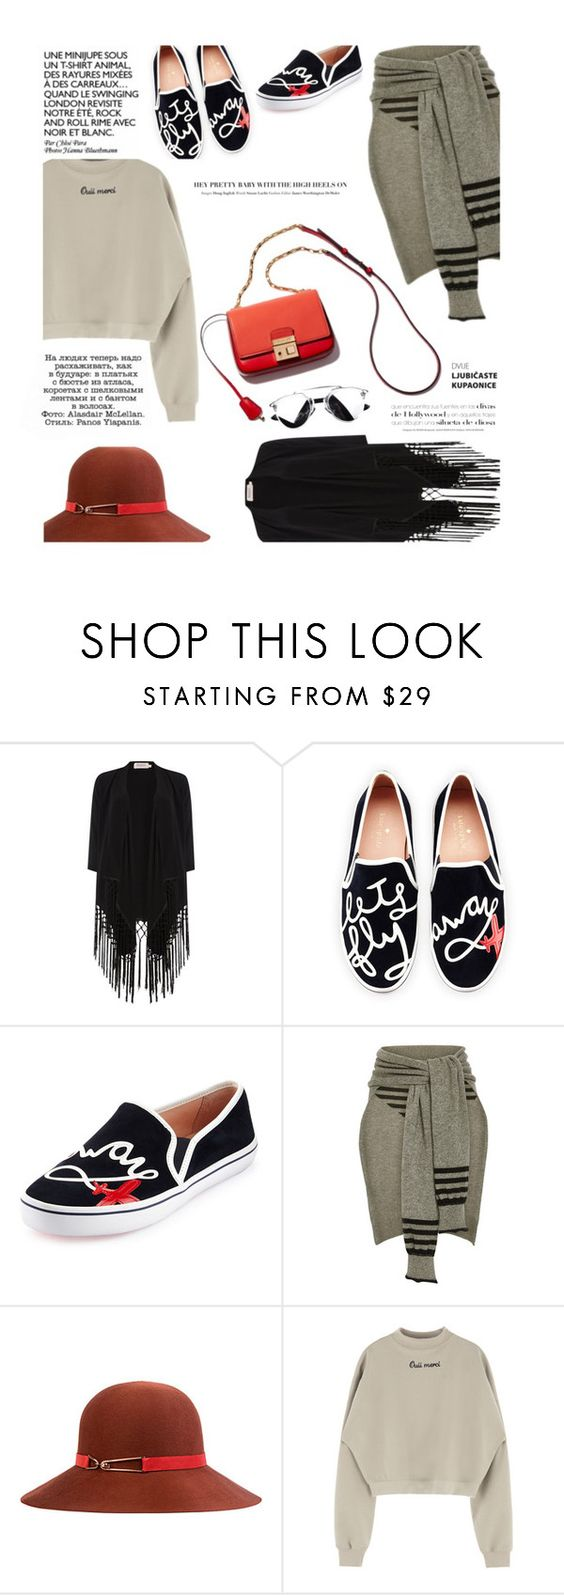 """""""Untitled #1398"""" by zayngirl1dlove ❤ liked on Polyvore featuring Soaked in Luxury, Kate Spade, Sonia Rykiel, Eugenia Kim, women's clothing, women, female, woman, misses and juniors"""